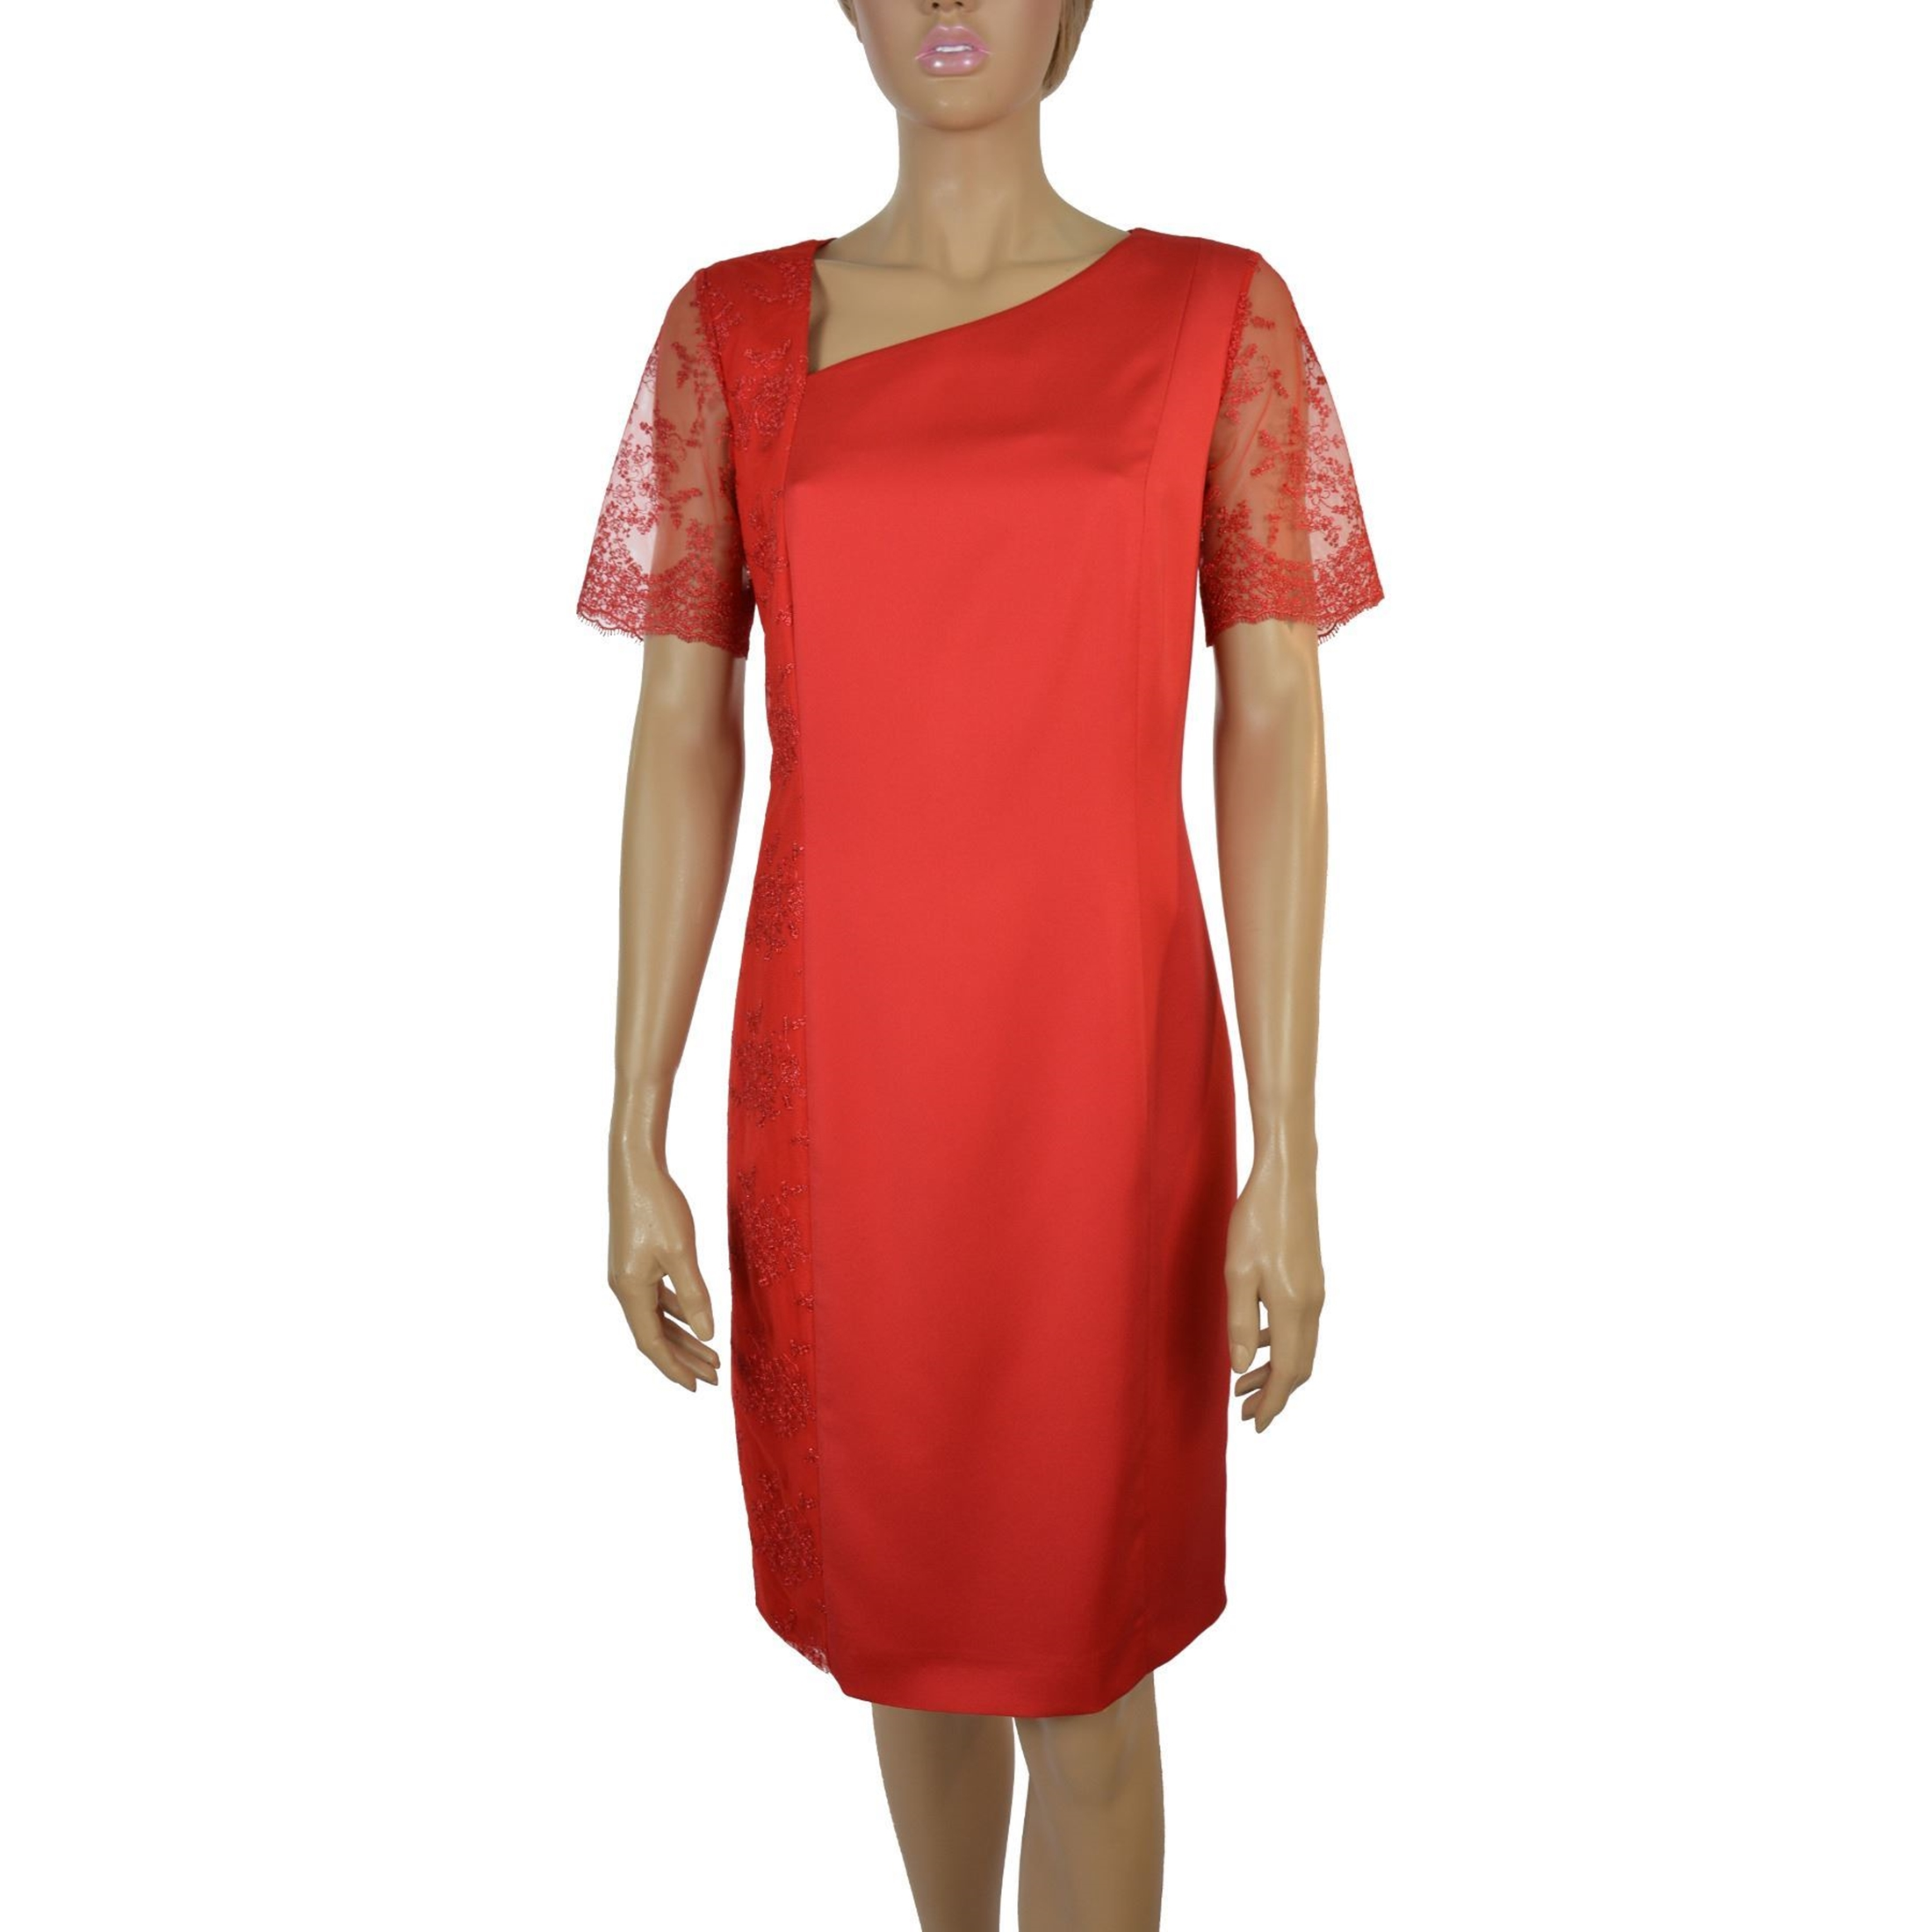 Picture of Women's Dress - LM451426 RED